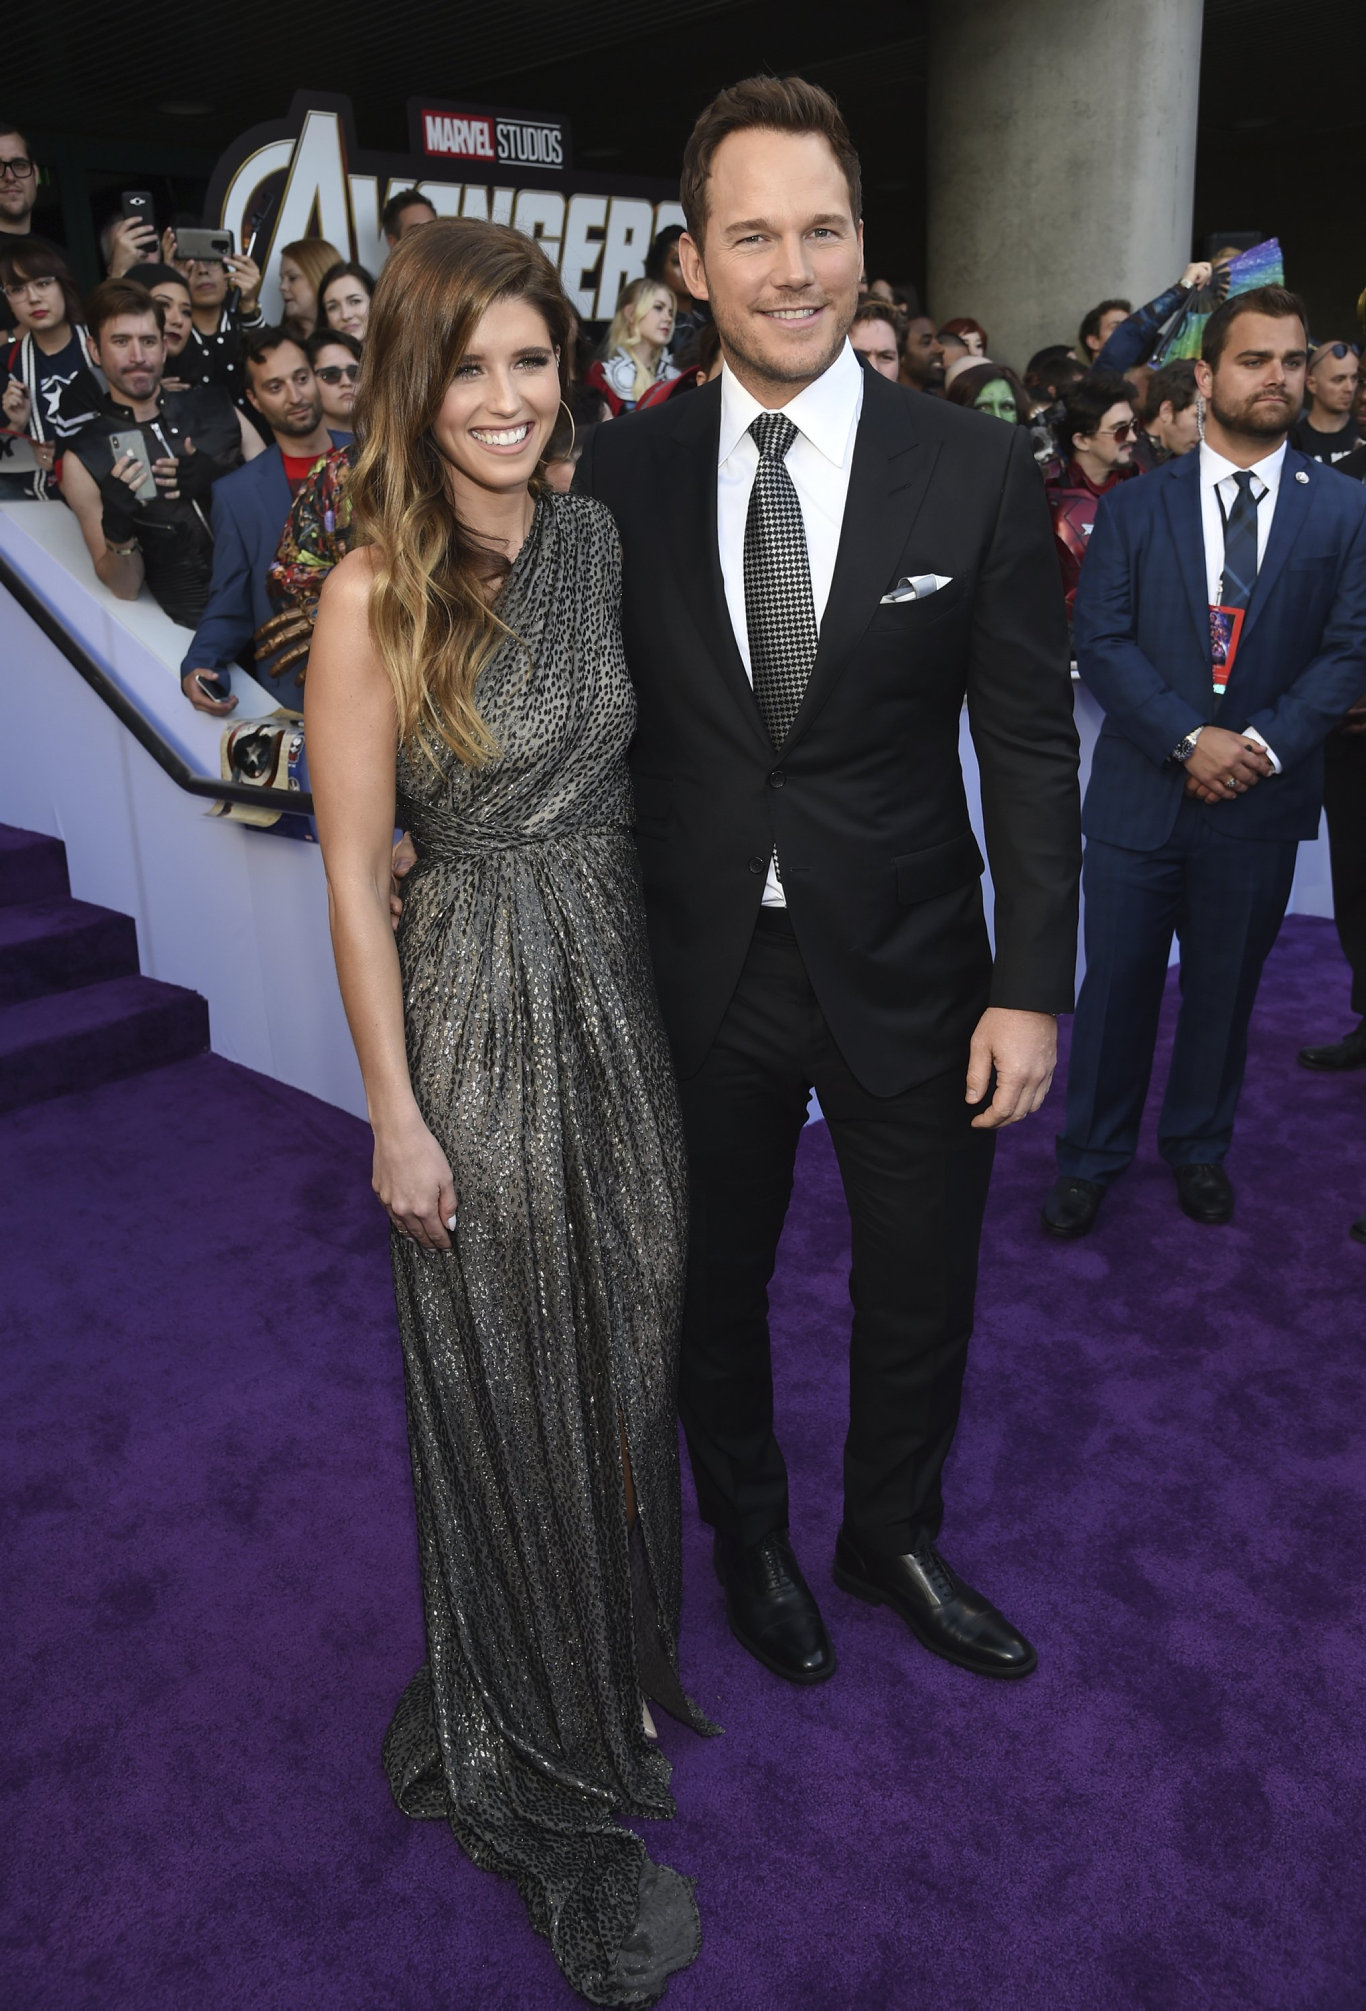 Katherine Schwarzenegger, left, and Chris Pratt arrive at the premiere of Avengers: Endgame at the Los Angeles Convention Center.